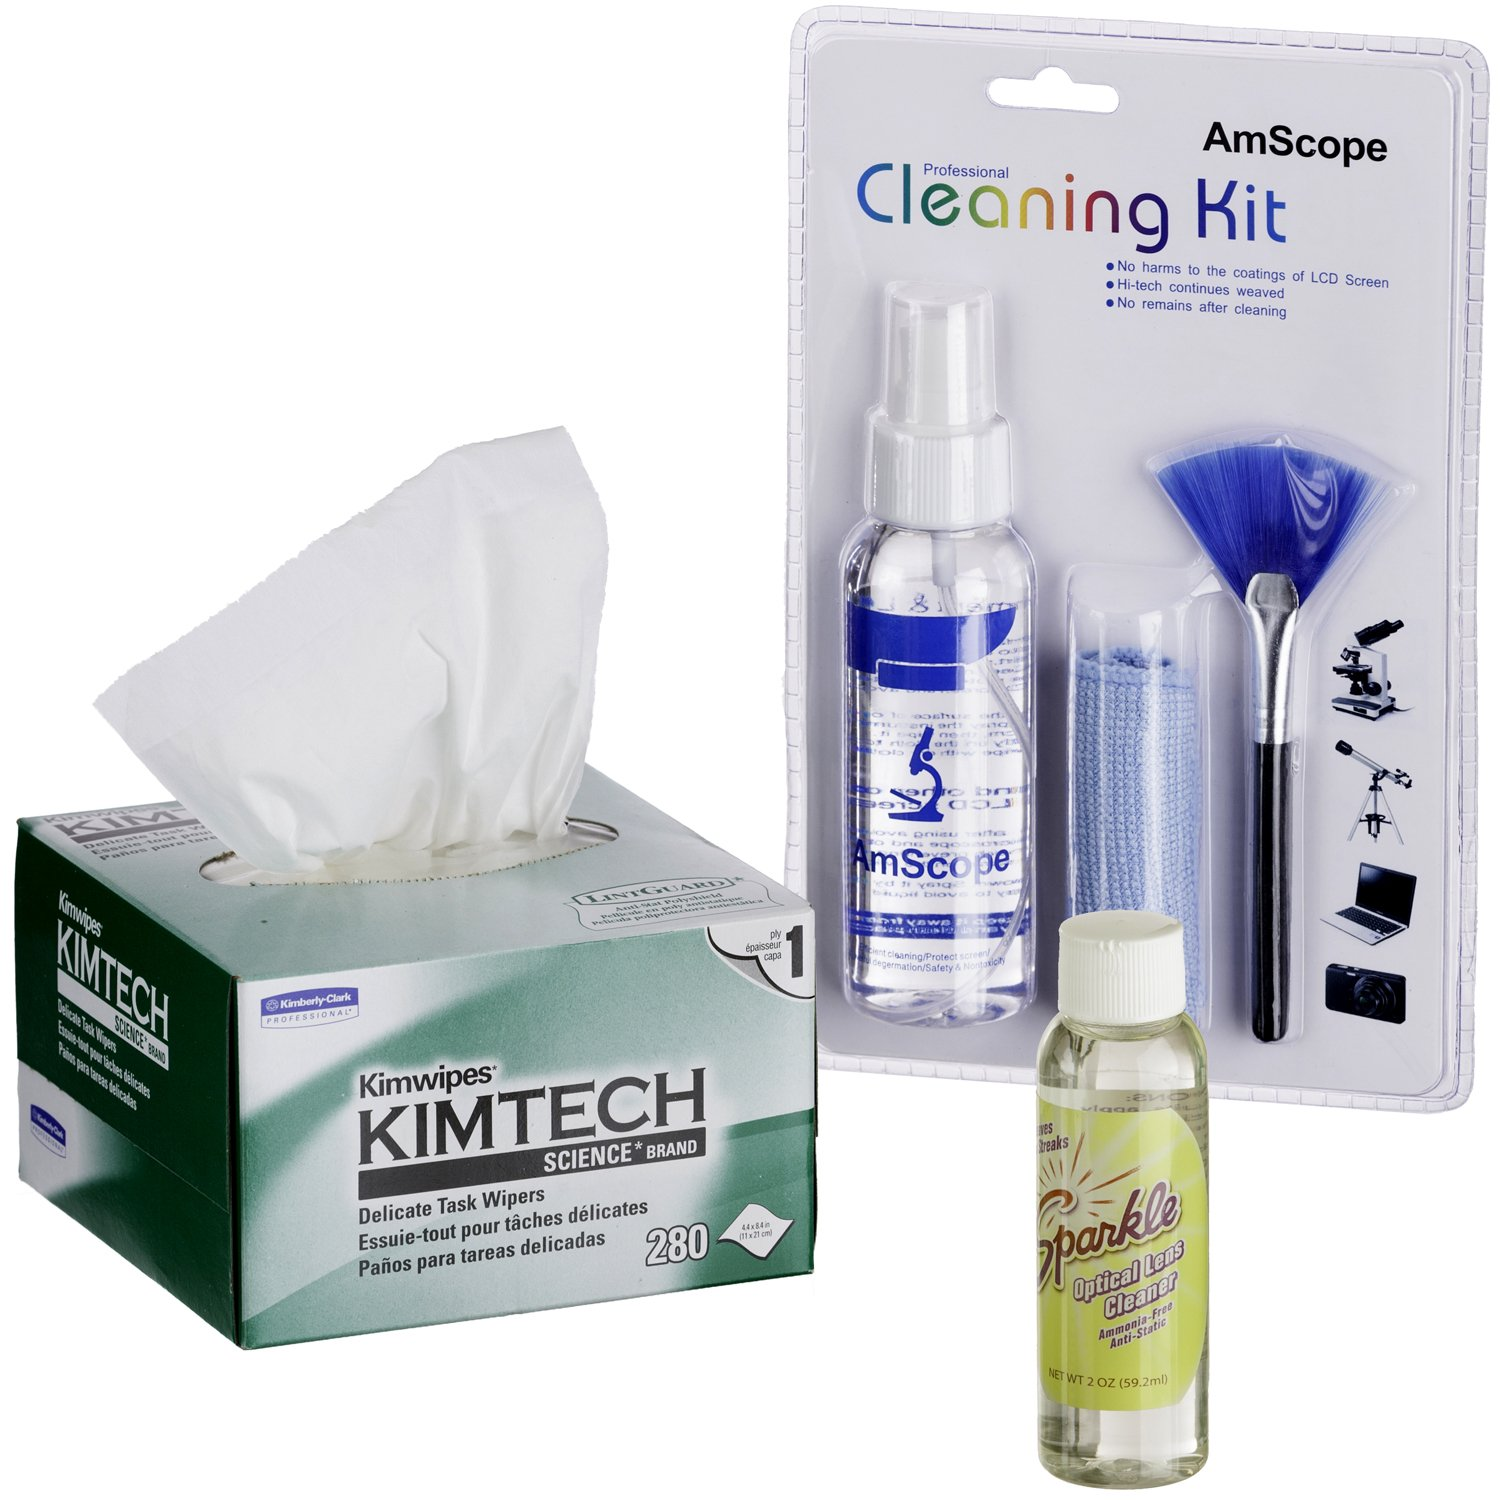 AmScope CLS-CKI-KIM Microscope and Camera Cleaning Kit for Lenses, Body and TV or Computer Screens